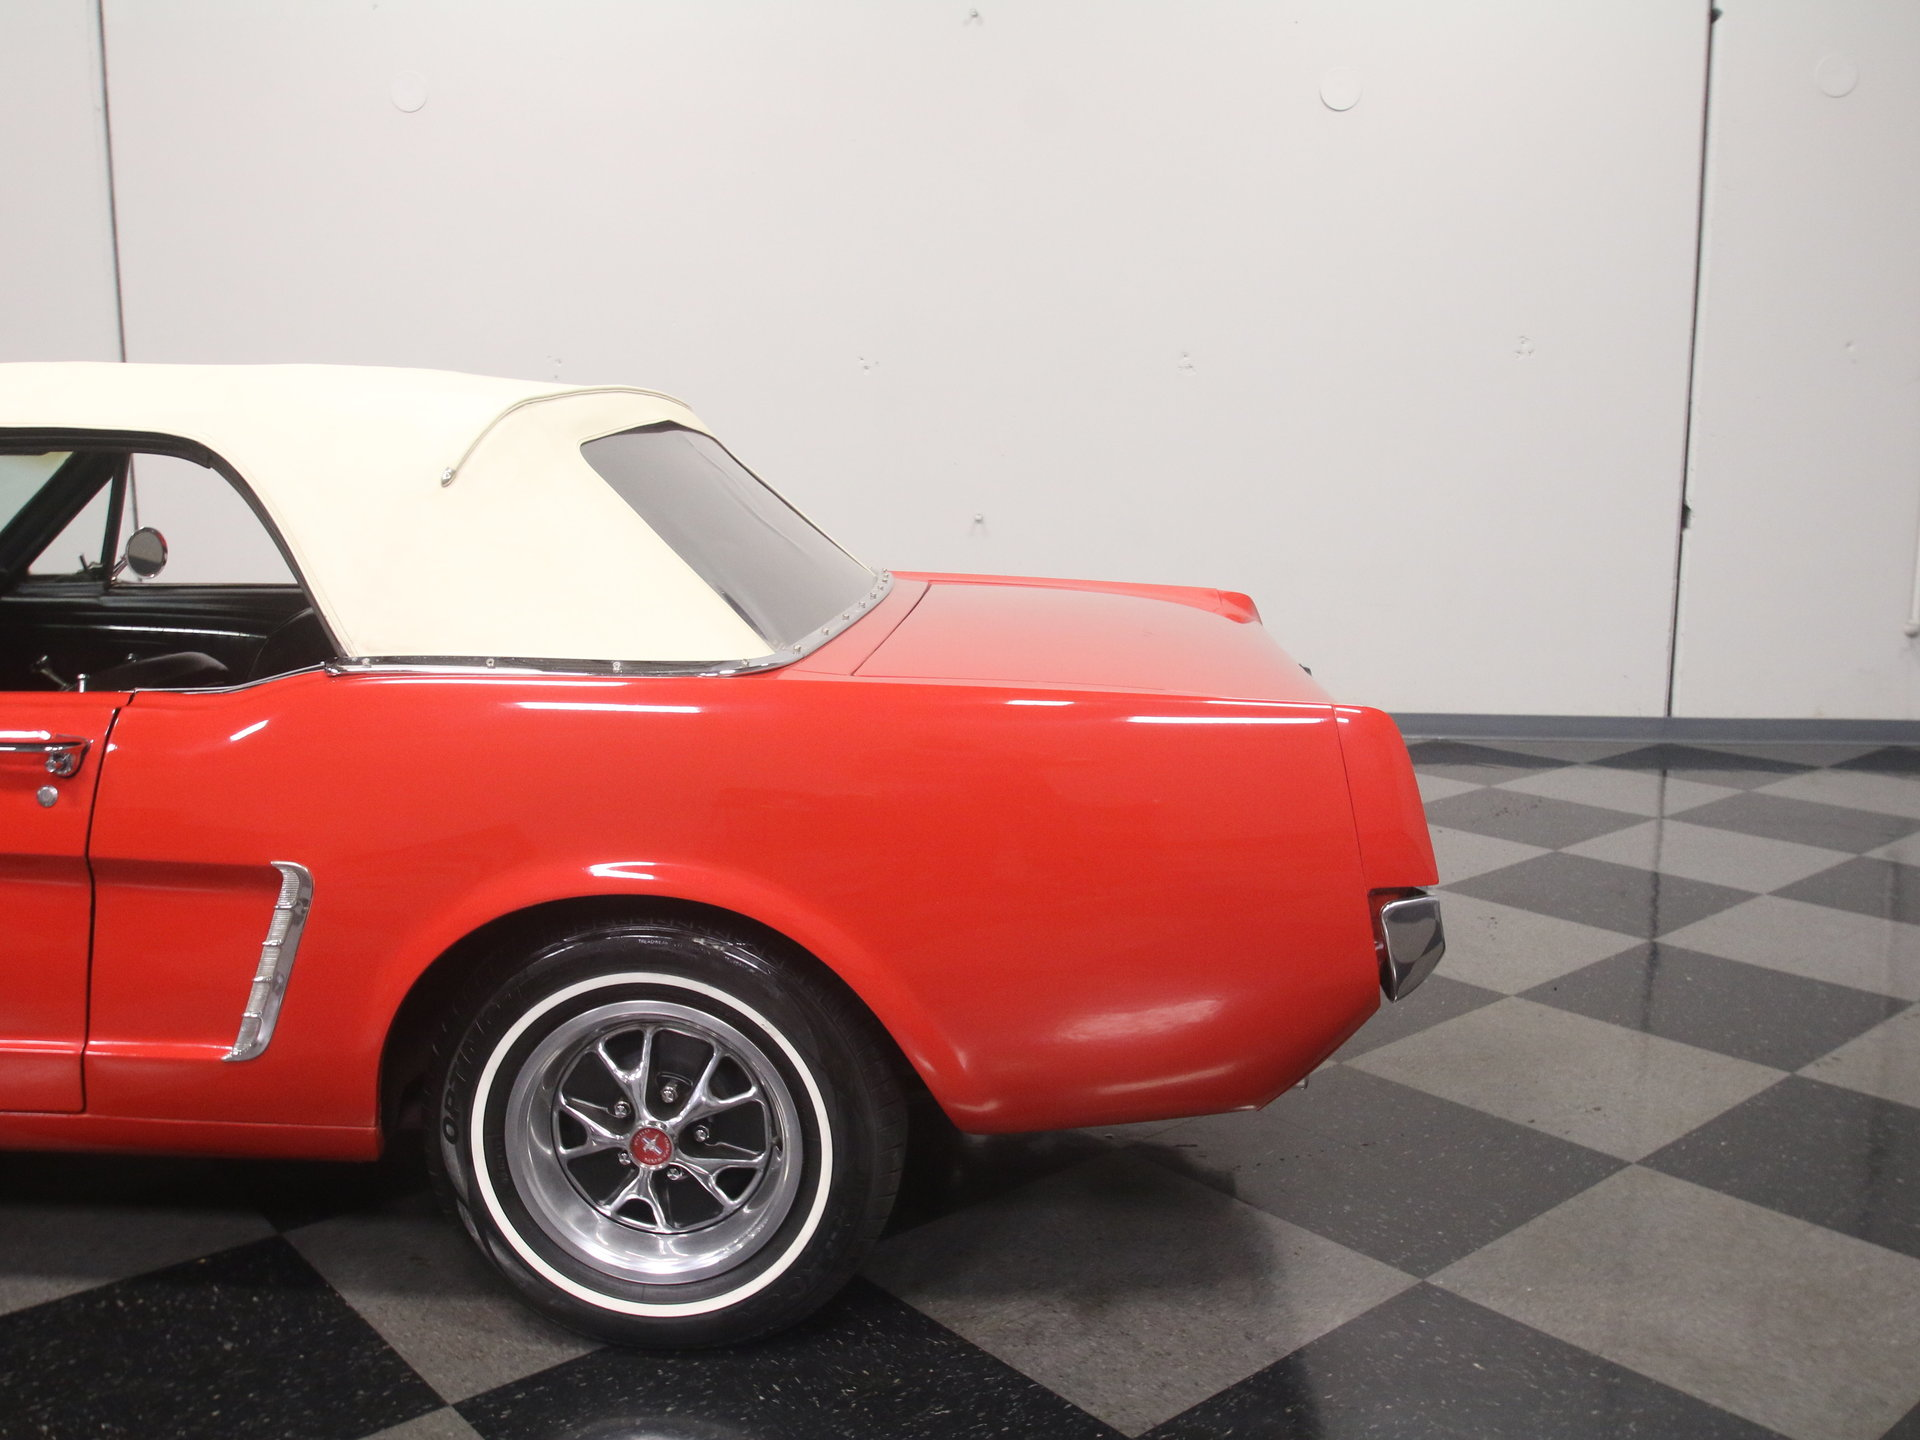 1965 Ford Mustang Convertible: FRESH C-CODE DROPTOP, 289 V8, AUTO, PWR STEERING, R134A A/C, READY TO CRUISE!!